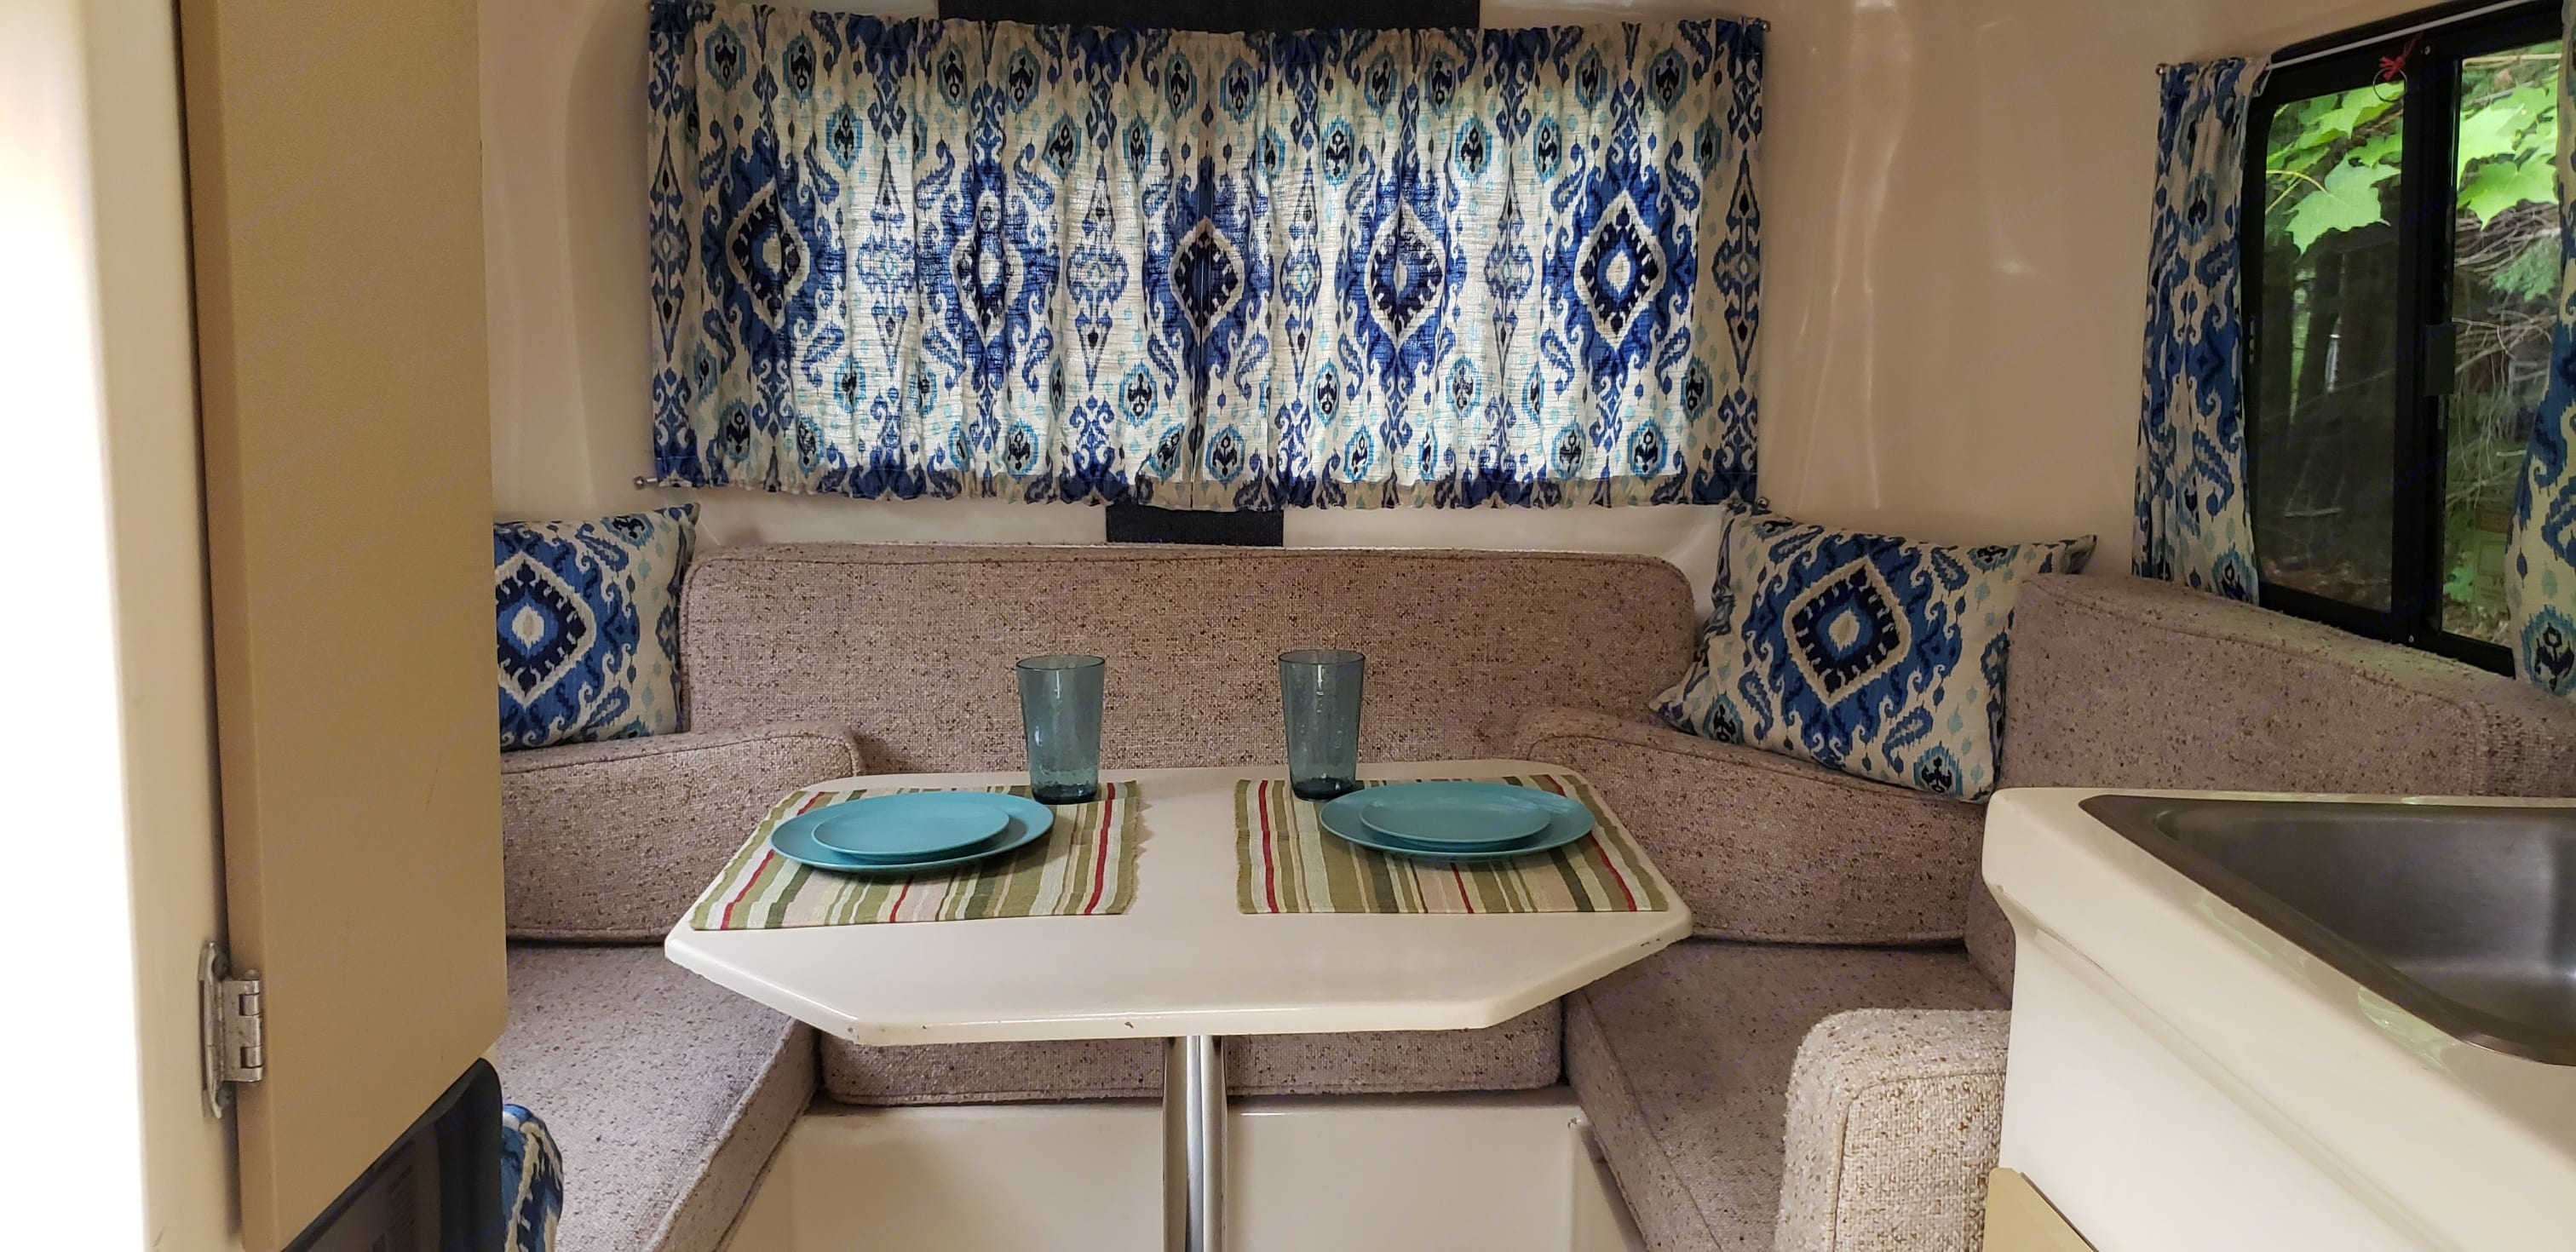 Nice place to dine in. U-Haul CT13 1984